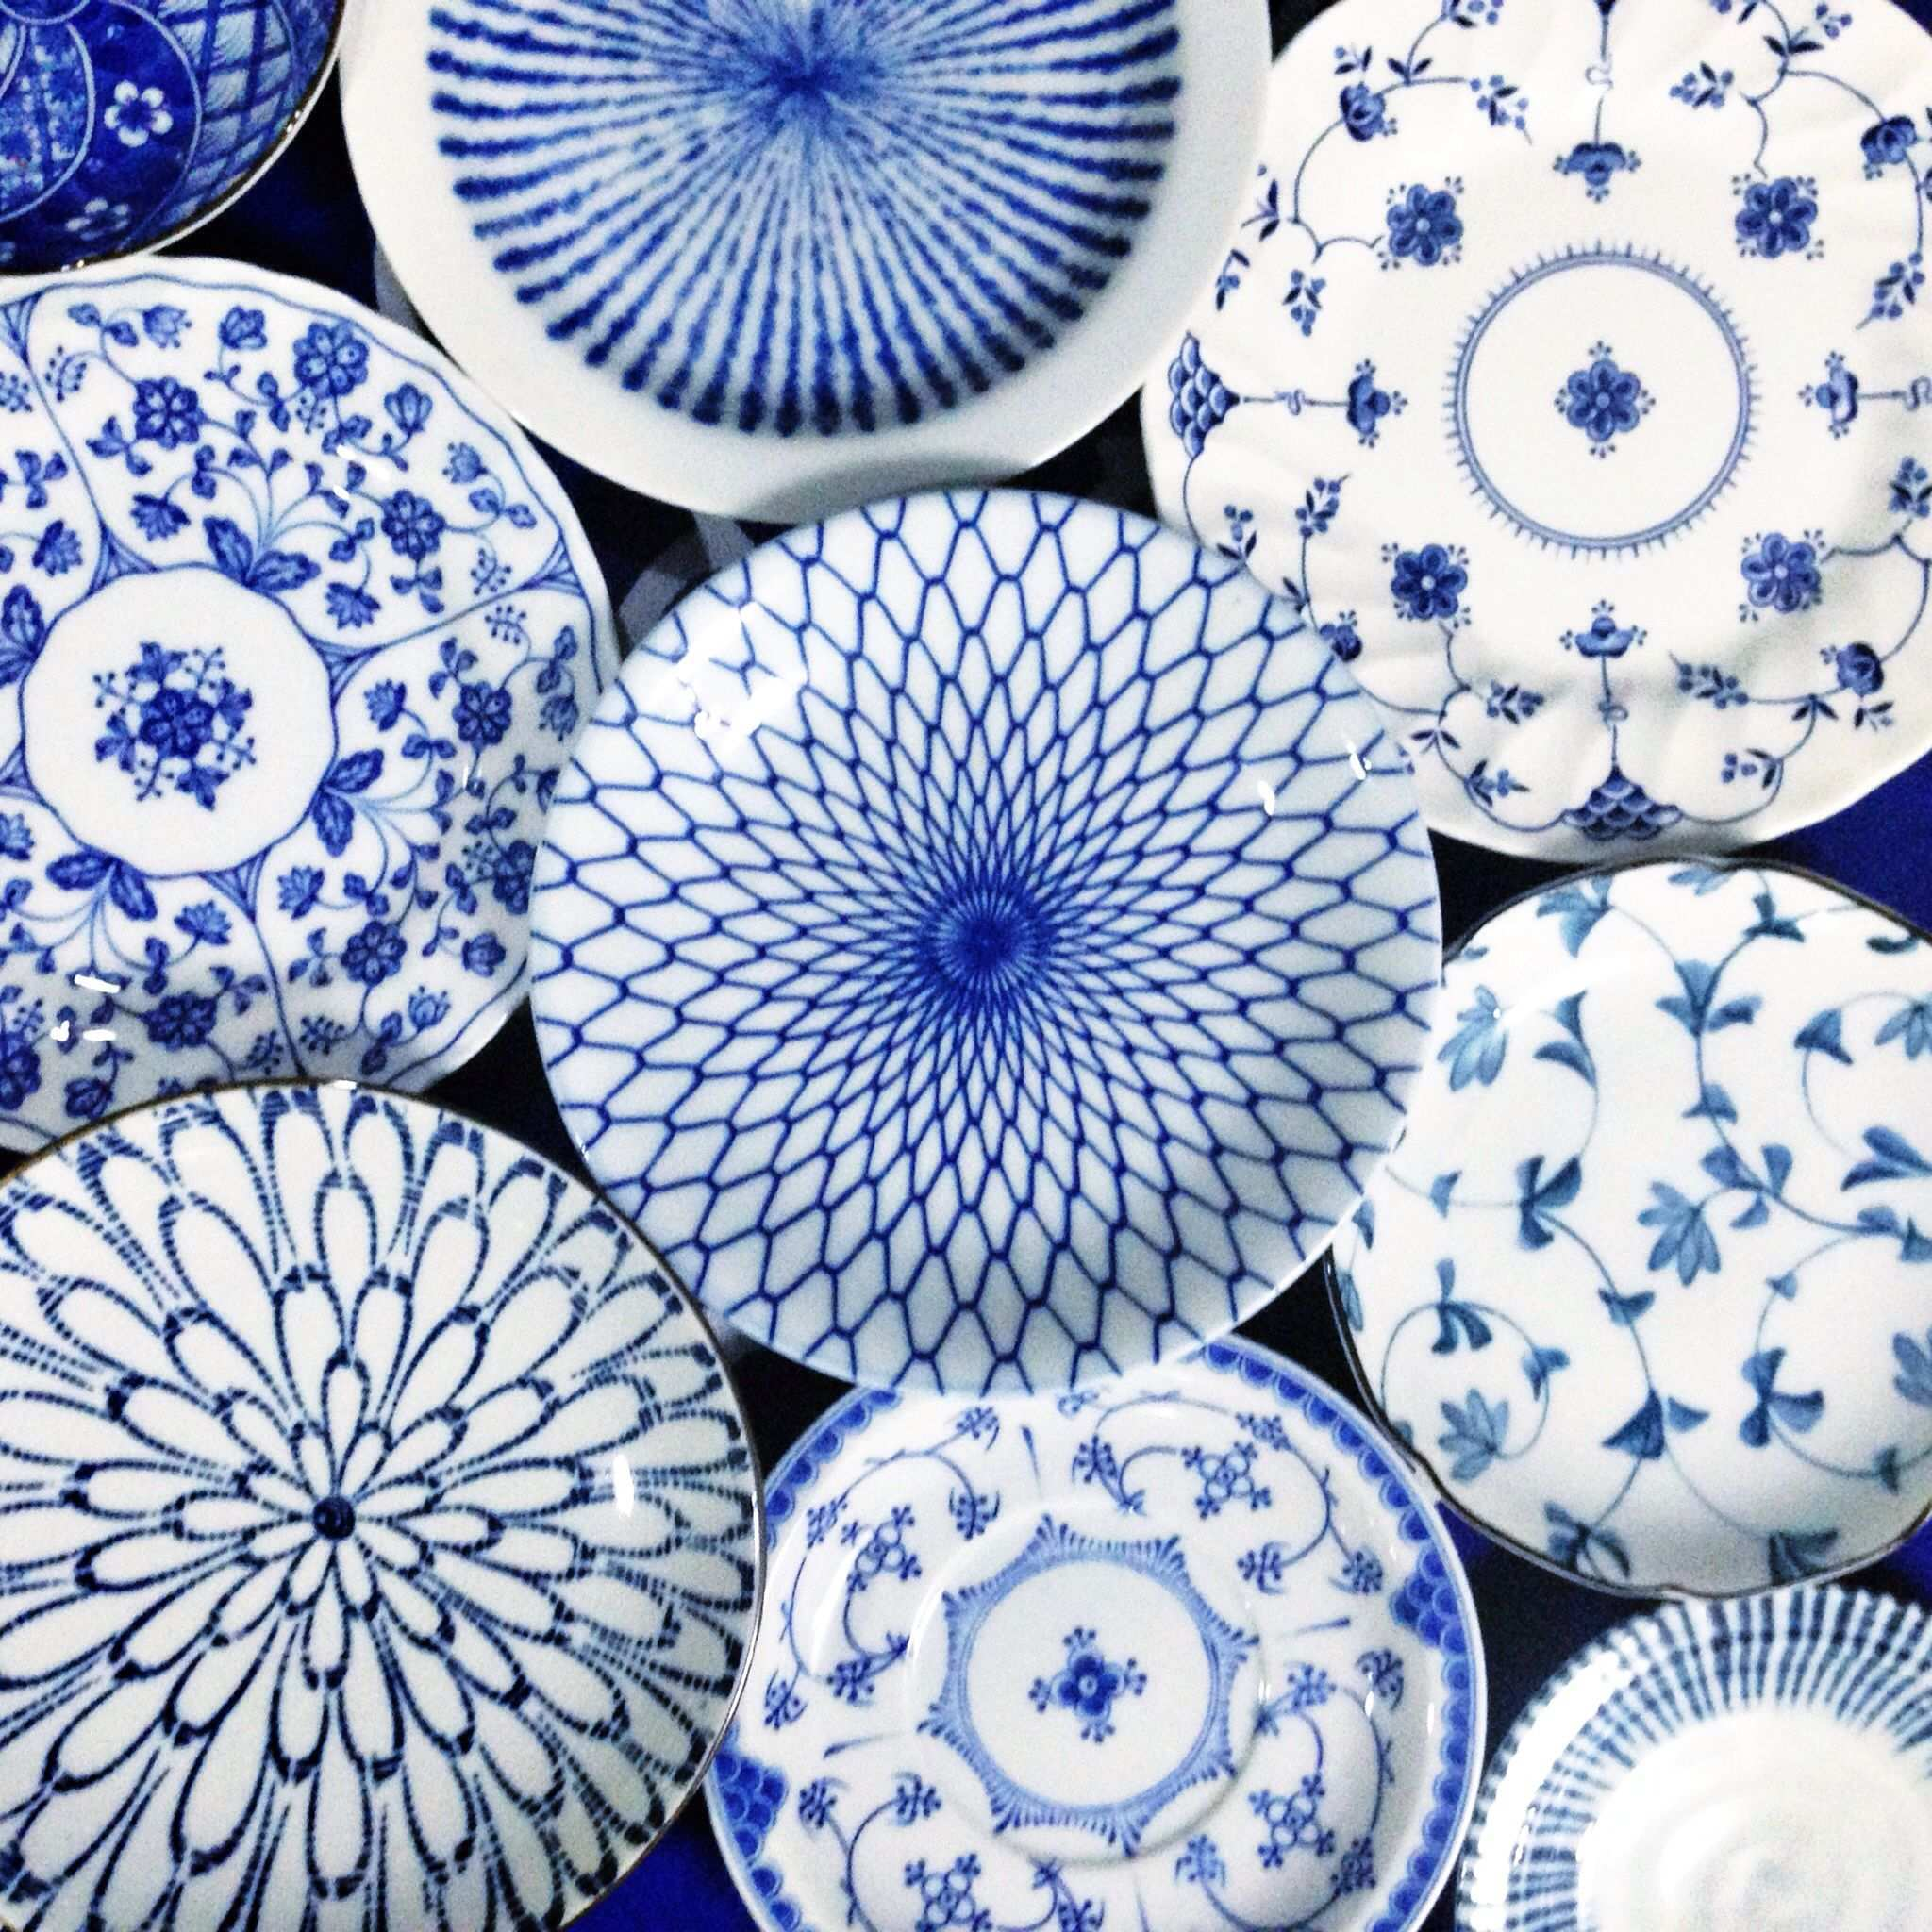 Blue And White Plates And Saucers